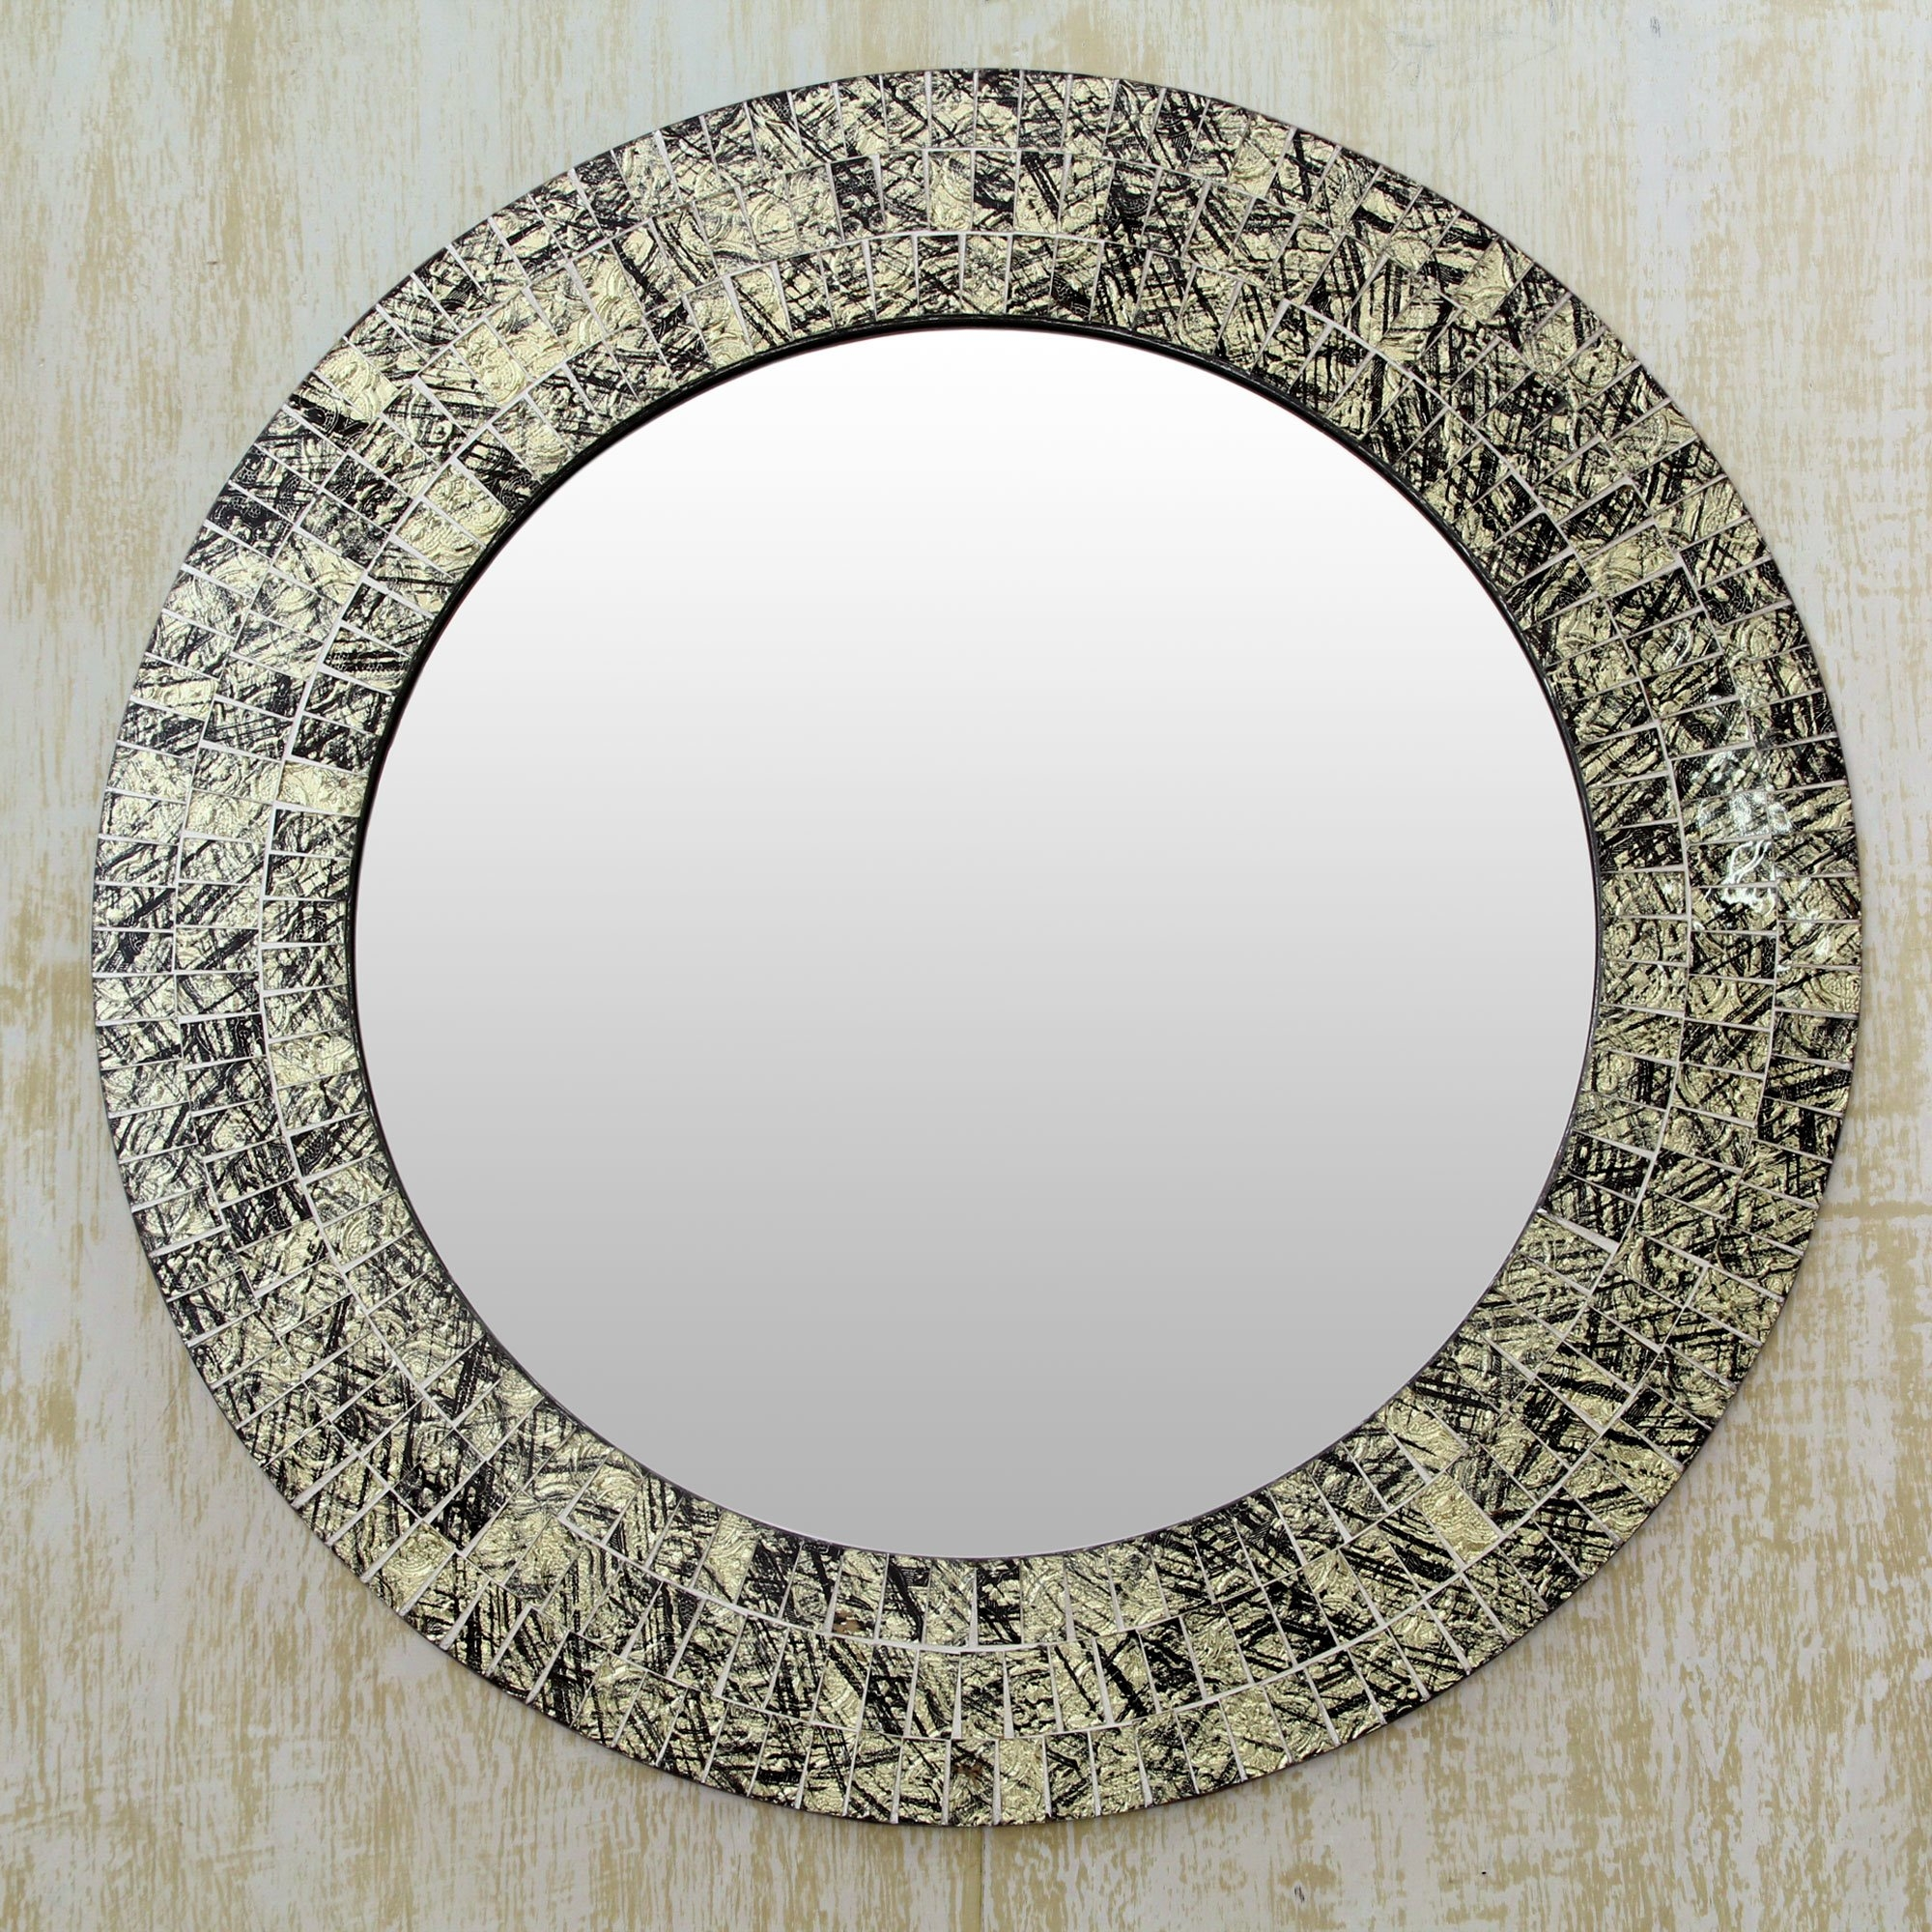 Novica Golden Moon Glass Mosaic Round Wall Mirror Wayfair In Round Mosaic Wall Mirror (Image 9 of 15)